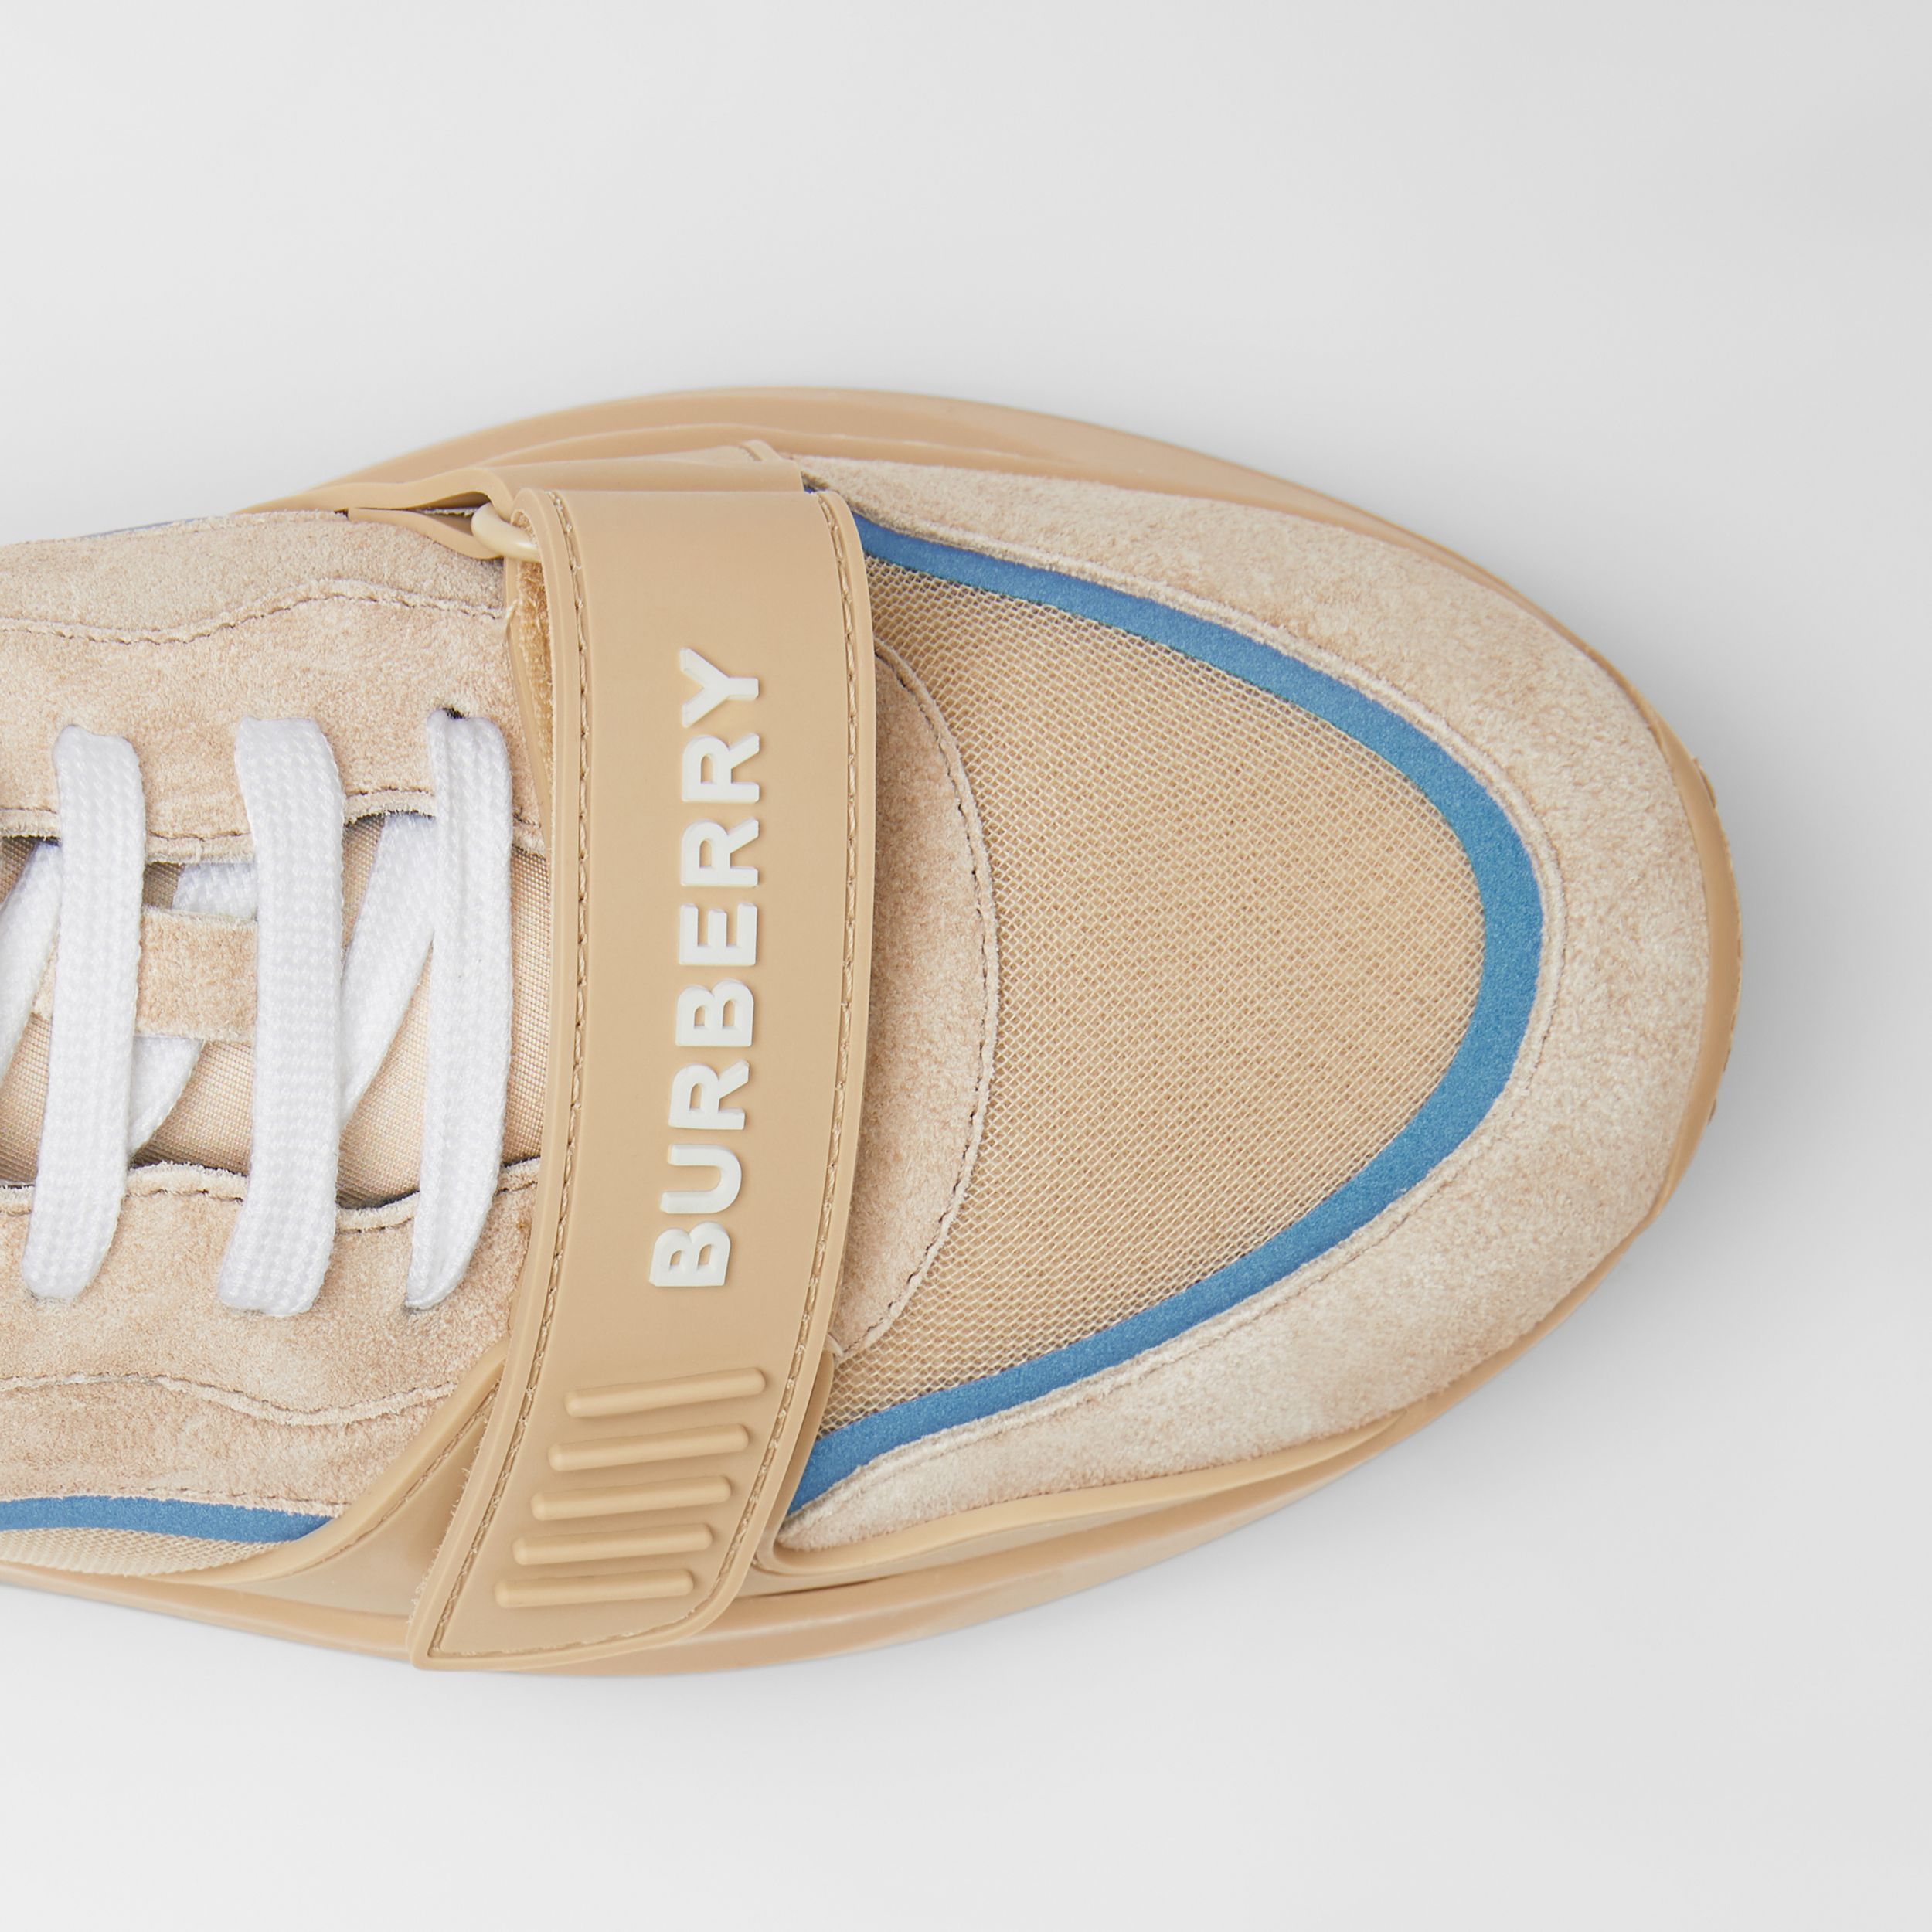 Suede, Leather and Mesh Sneakers in Beige - Men | Burberry - 2